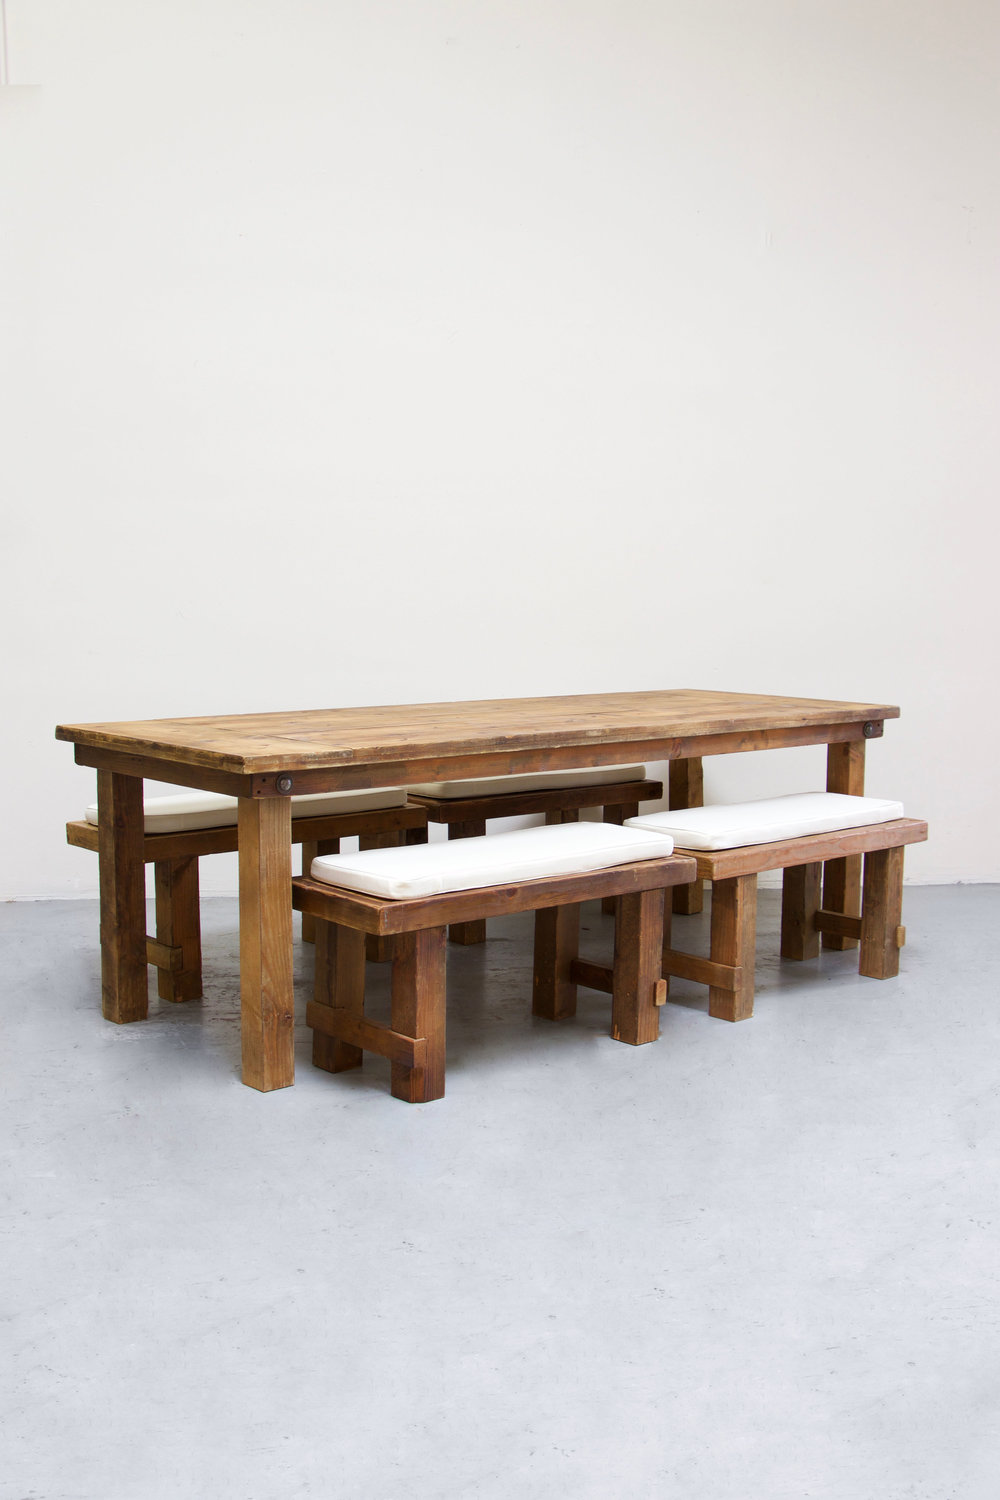 $145 1 Honey Brown Farm Table w/ 4 Short Benches